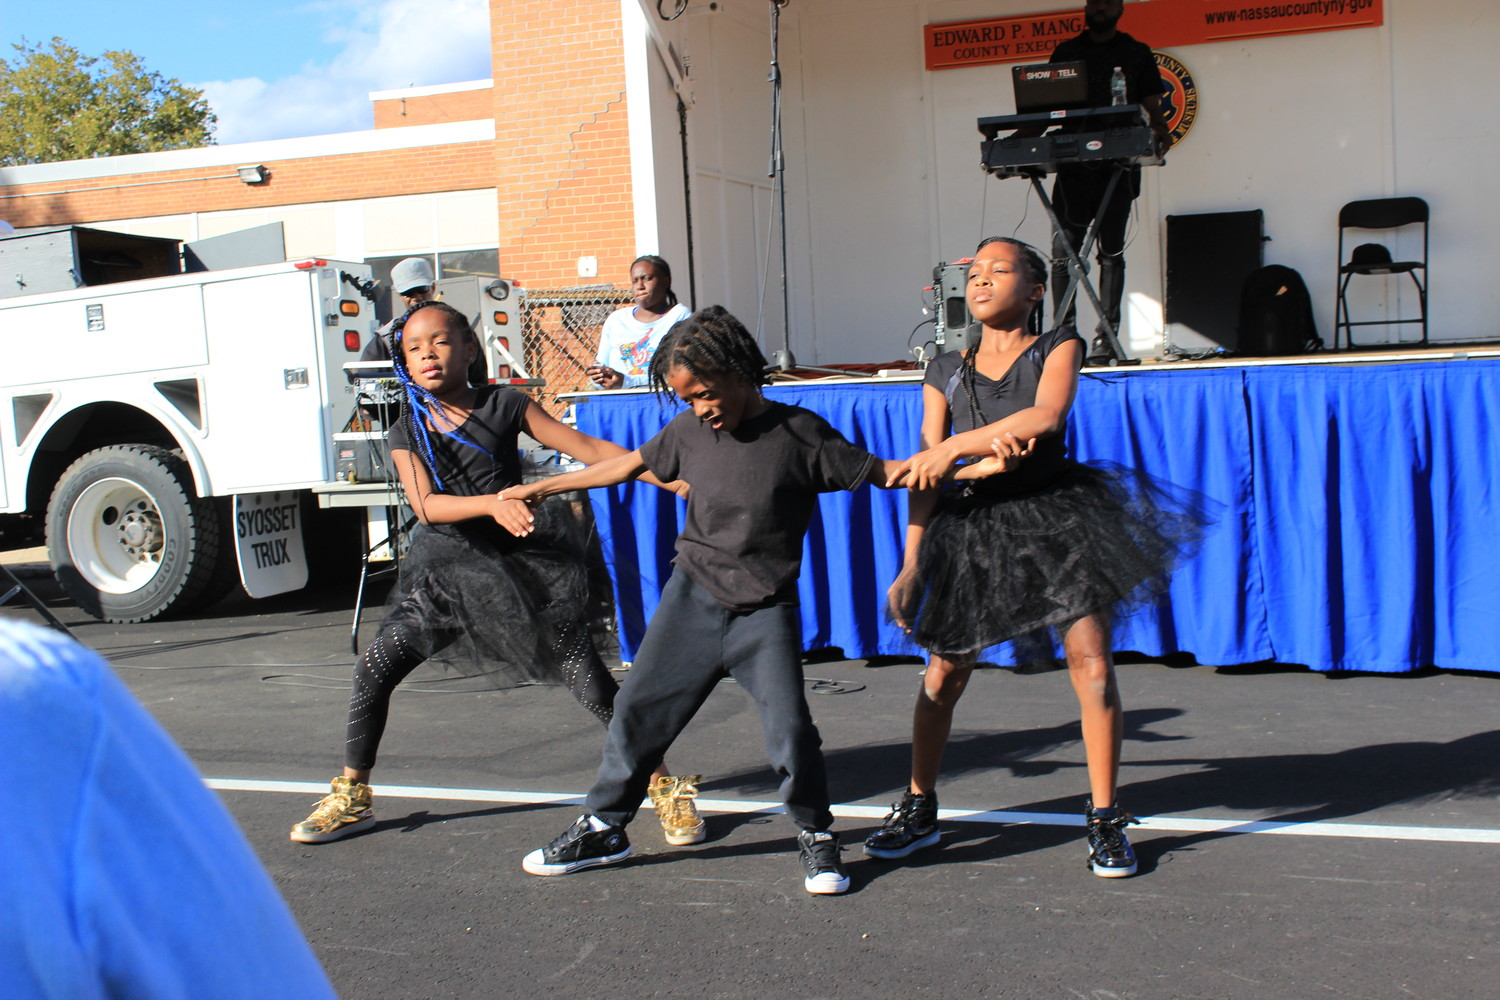 At the Elmont Family Fun Day, performers from Layla's Dance and Drum in North Valley Stream did a dance routine to entertain the crowd.